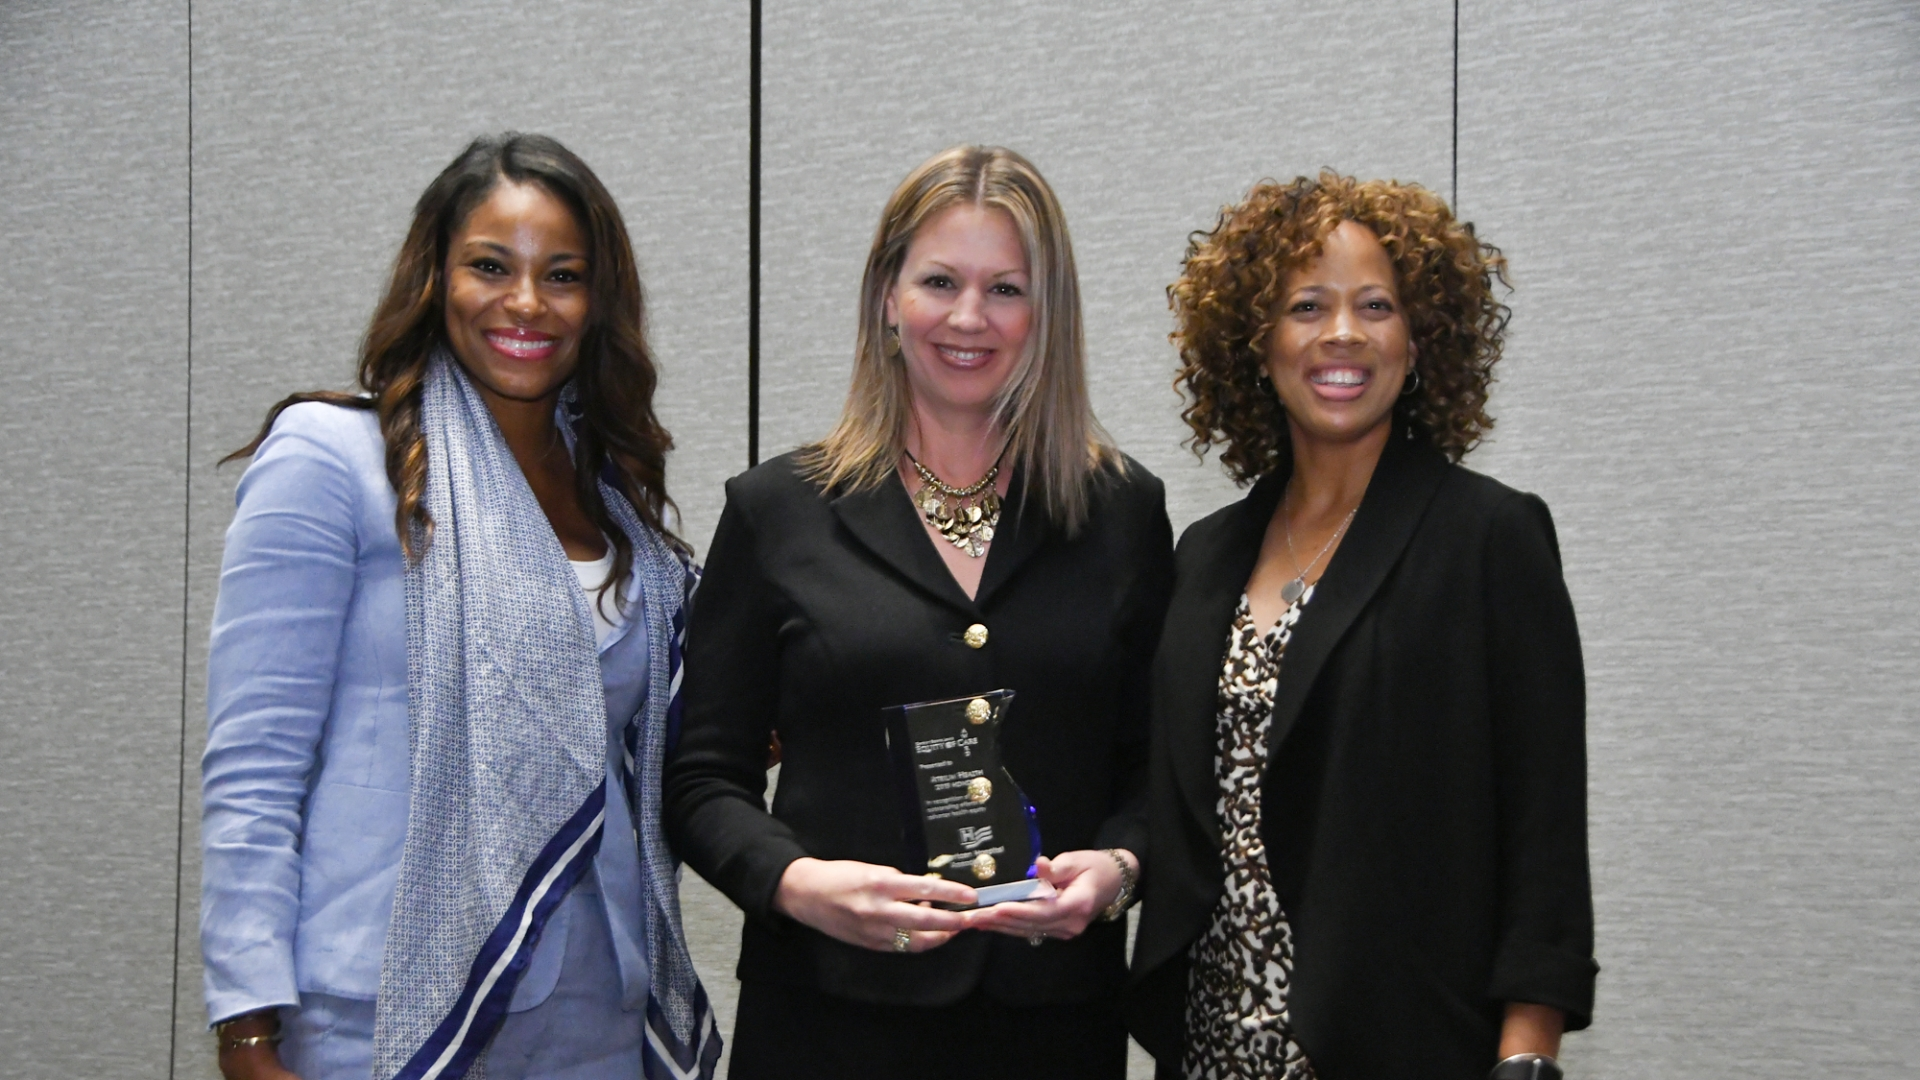 The American Hospital Association (AHA) recently named Atrium Health an honoree for the 2019 Carolyn Boone Lewis Equity of Care Award. The tribute recognizes hospitals and health systems for their efforts to reduce healthcare inequities and advance diversity and inclusion.